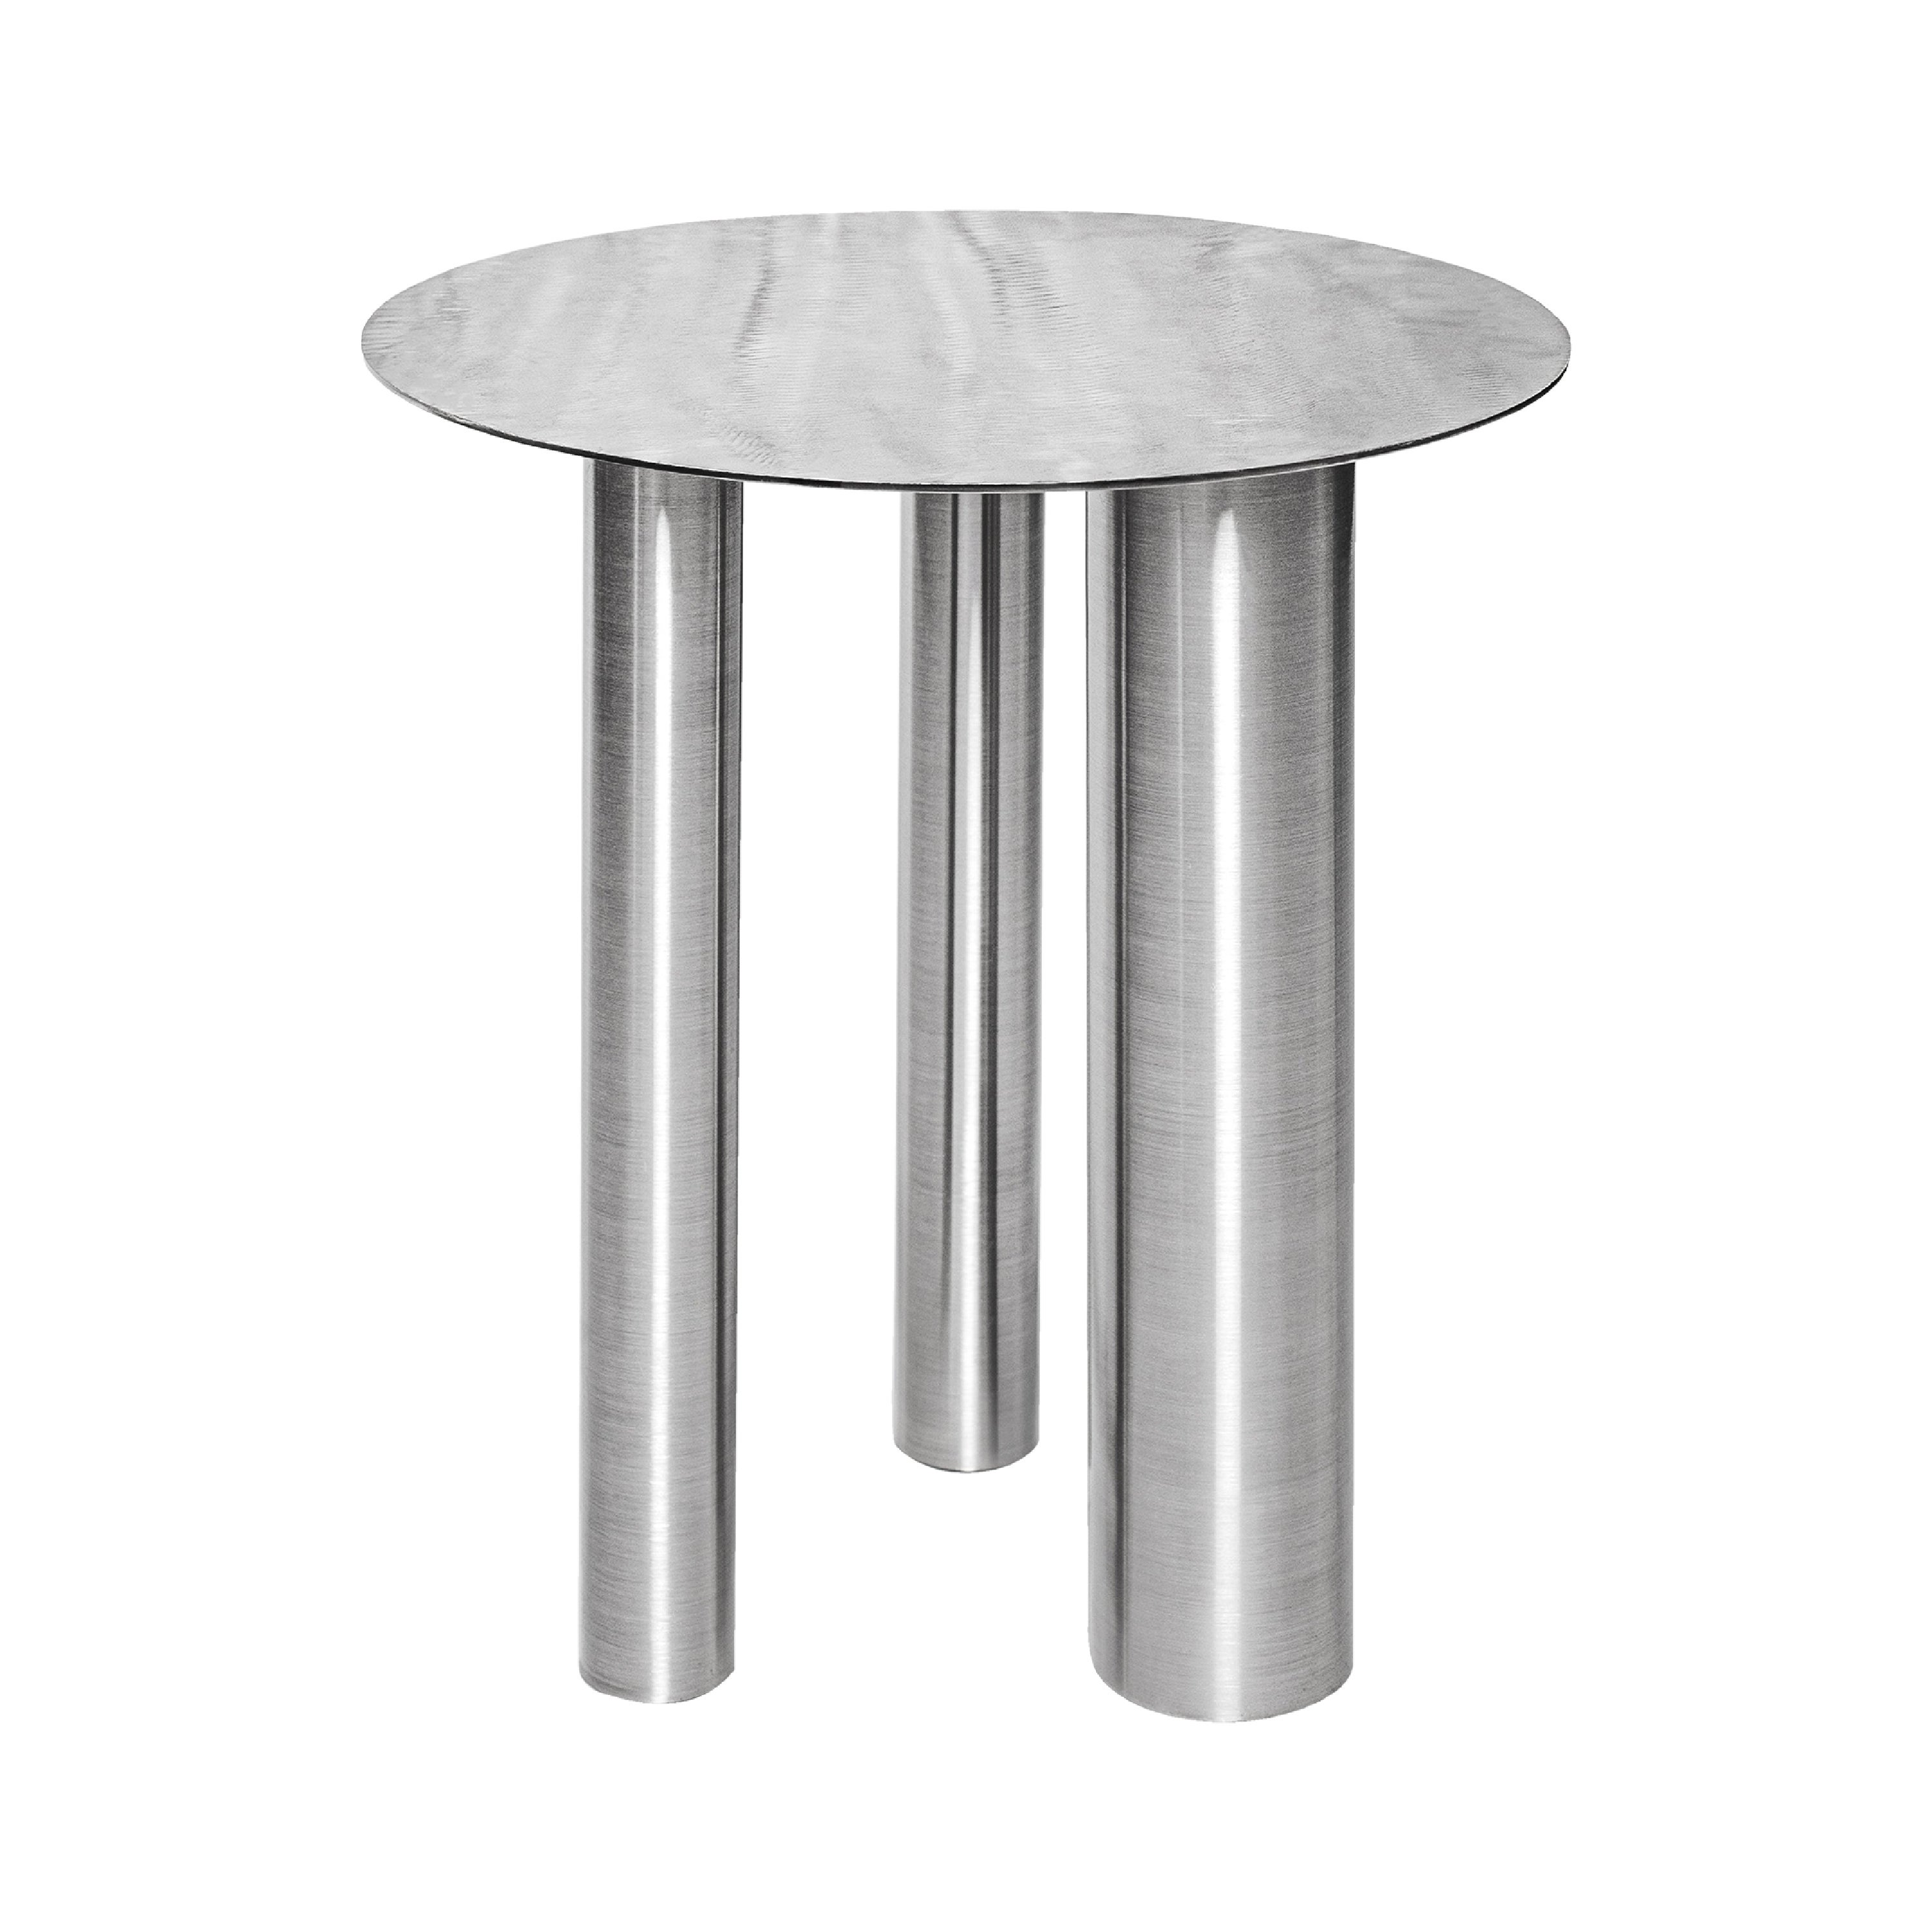 High Coffee Table Brandt CS1 made of stainless steel by NOOM